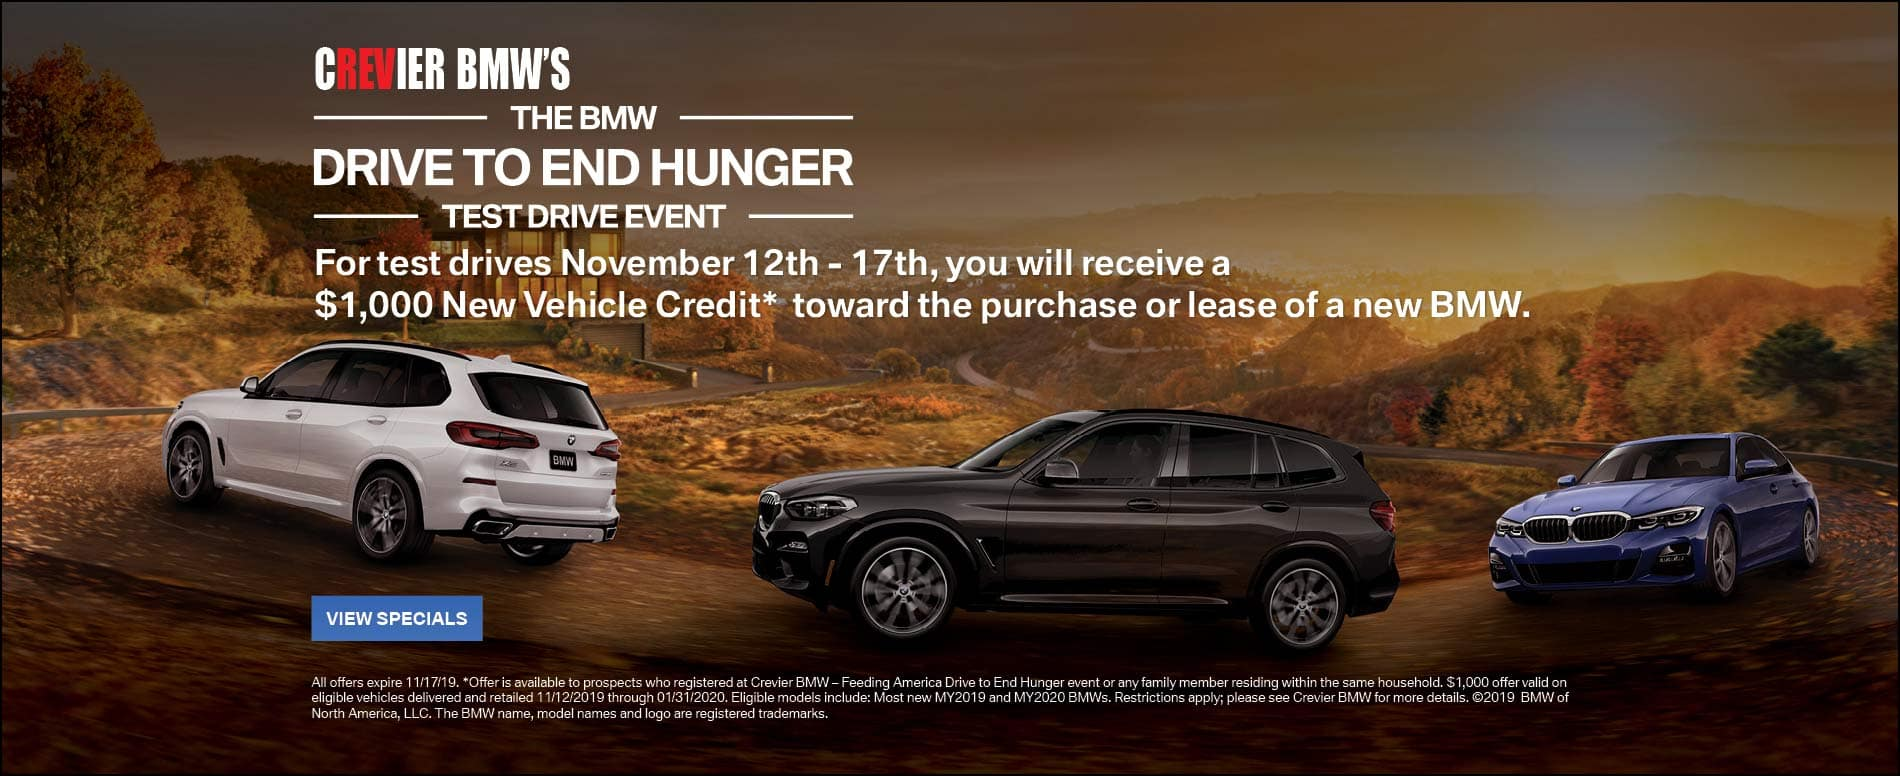 bmw to end hunger